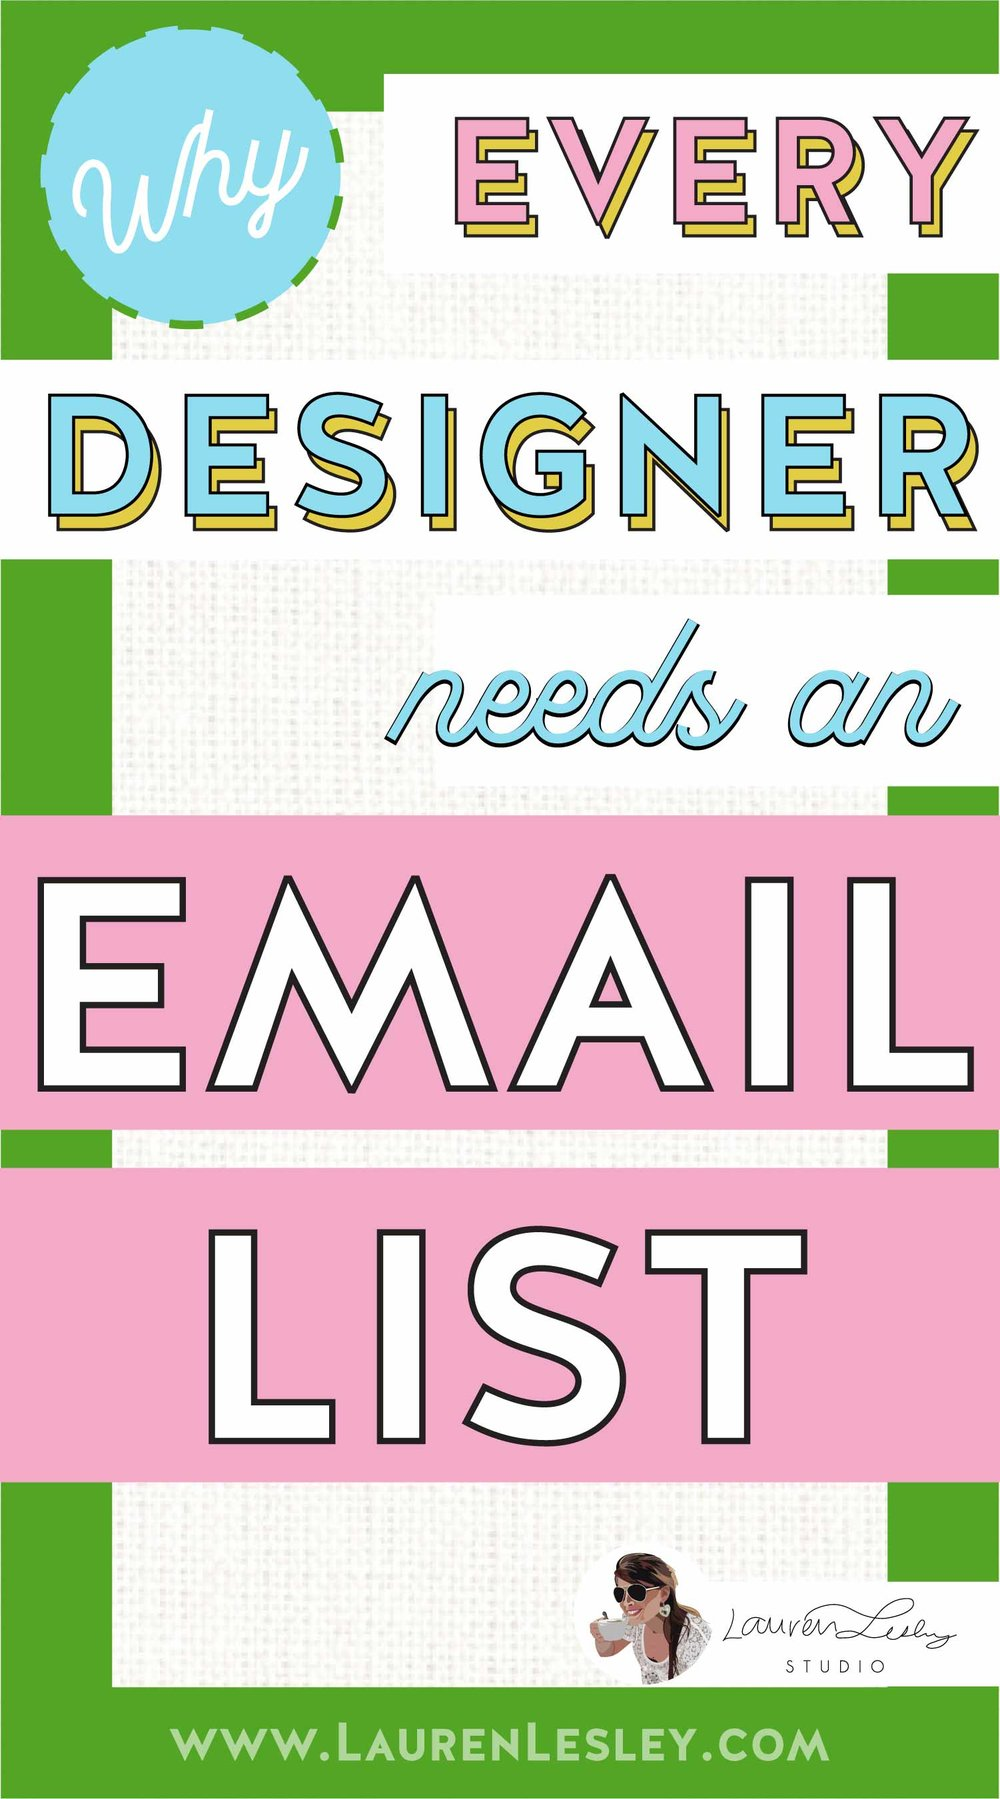 Why Every Designer Needs an Email List